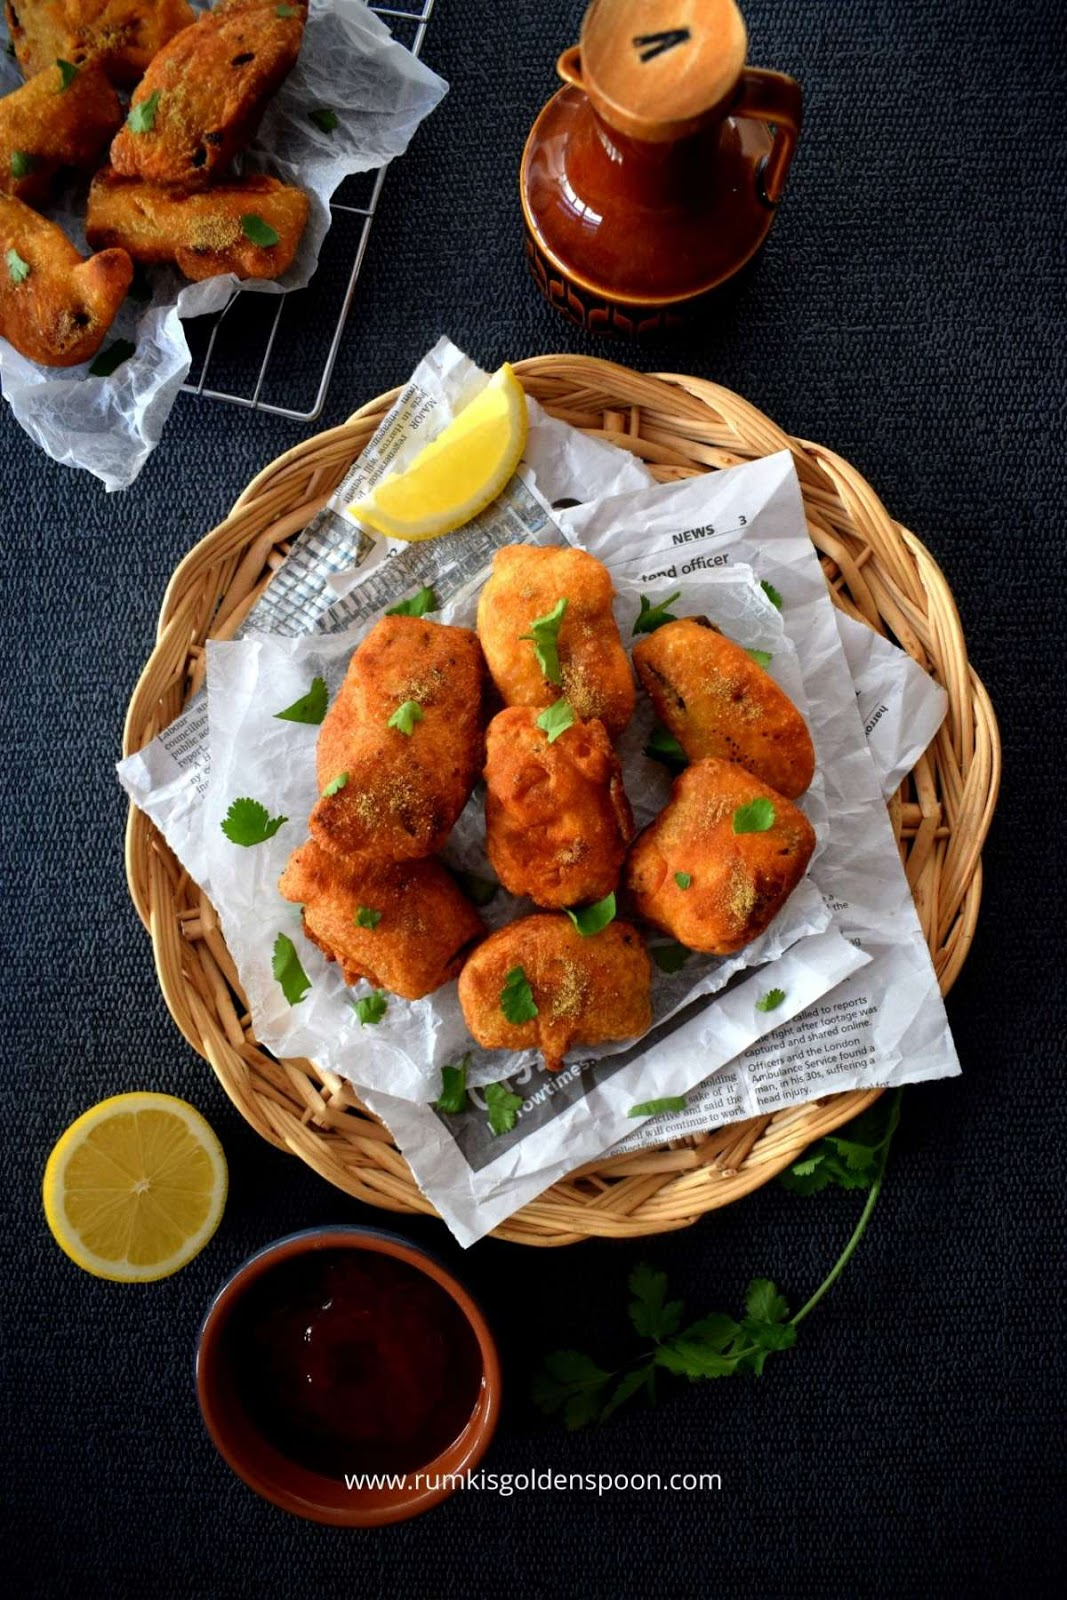 Capsicum Bajji, Capsicum Bajji recipe, Capsicum pakoda, Shimla mirch ke pakora, recipe for capsicum, recipes of capsicum, capsicum recipe, capsicum recipes, recipe with capsicum, bajji recipes, milagai bajji, chilli bajji, how to make capsicum bajji, snacks recipe, snack recipe, Indian snack recipe, indian recipe for snacks, Indian snacks recipe, Rumki's Golden Spoon